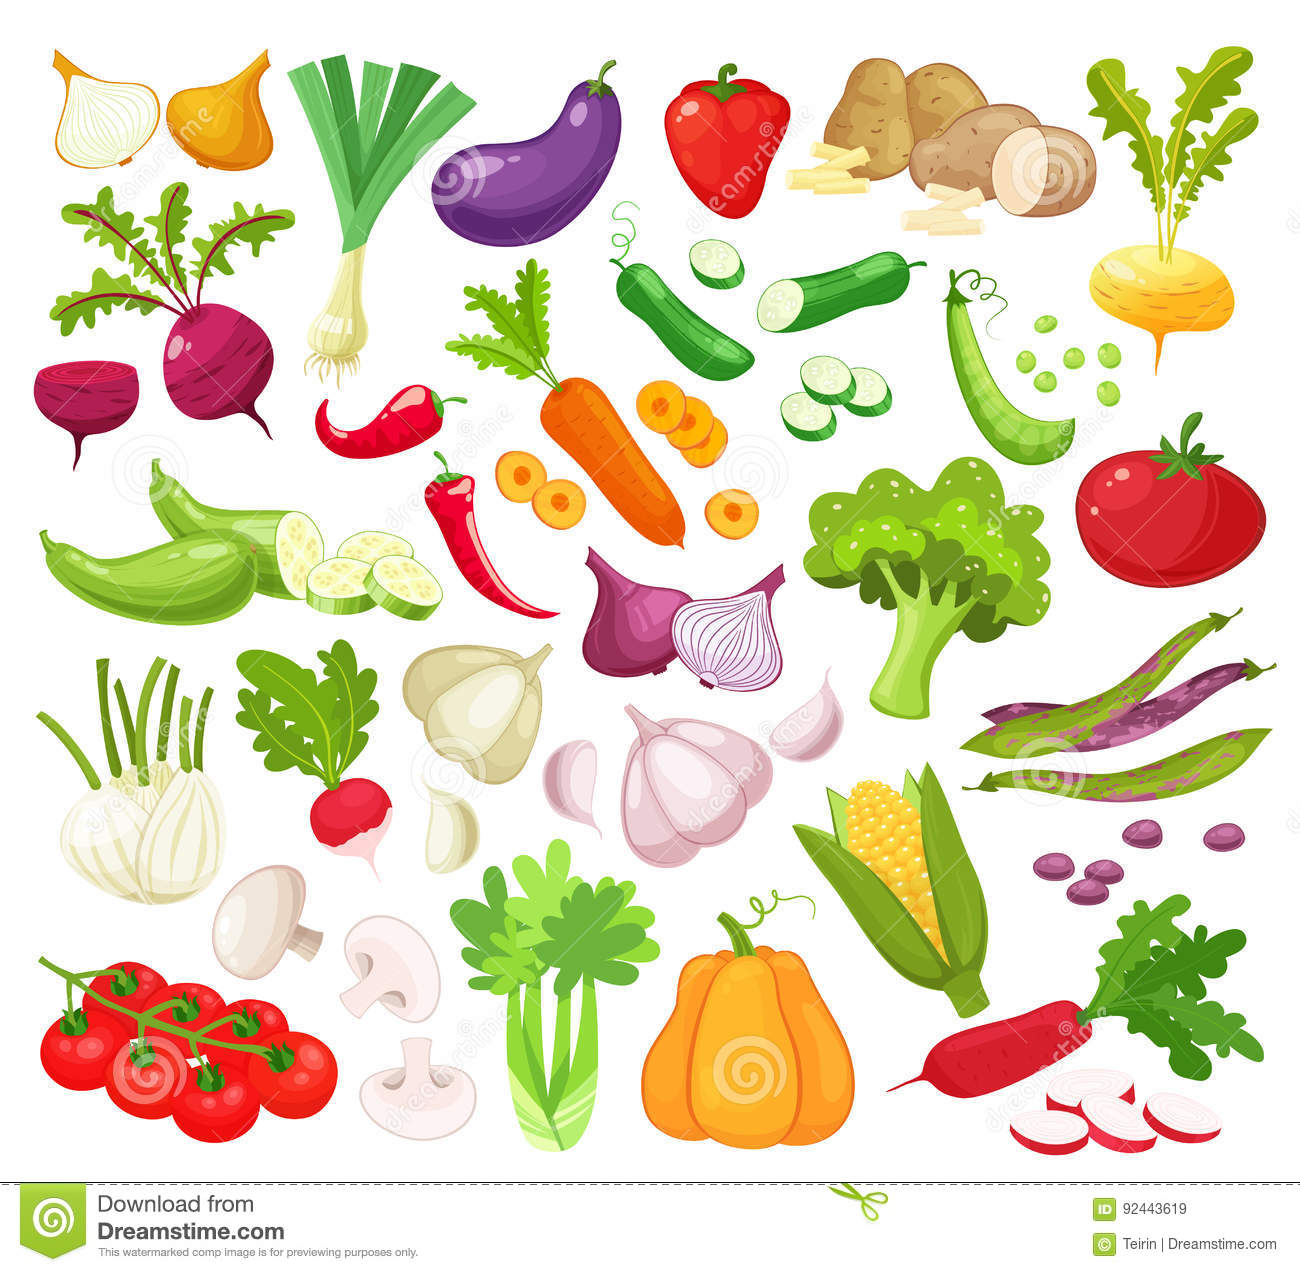 Download Raw Vegetables With Sliced Isolated Realistic Icons With Pepper Eggplant Garlic Mushroom Courgette Tomato Onion Cucumber Stock Vector - Illustration of peppers, health: 92443619